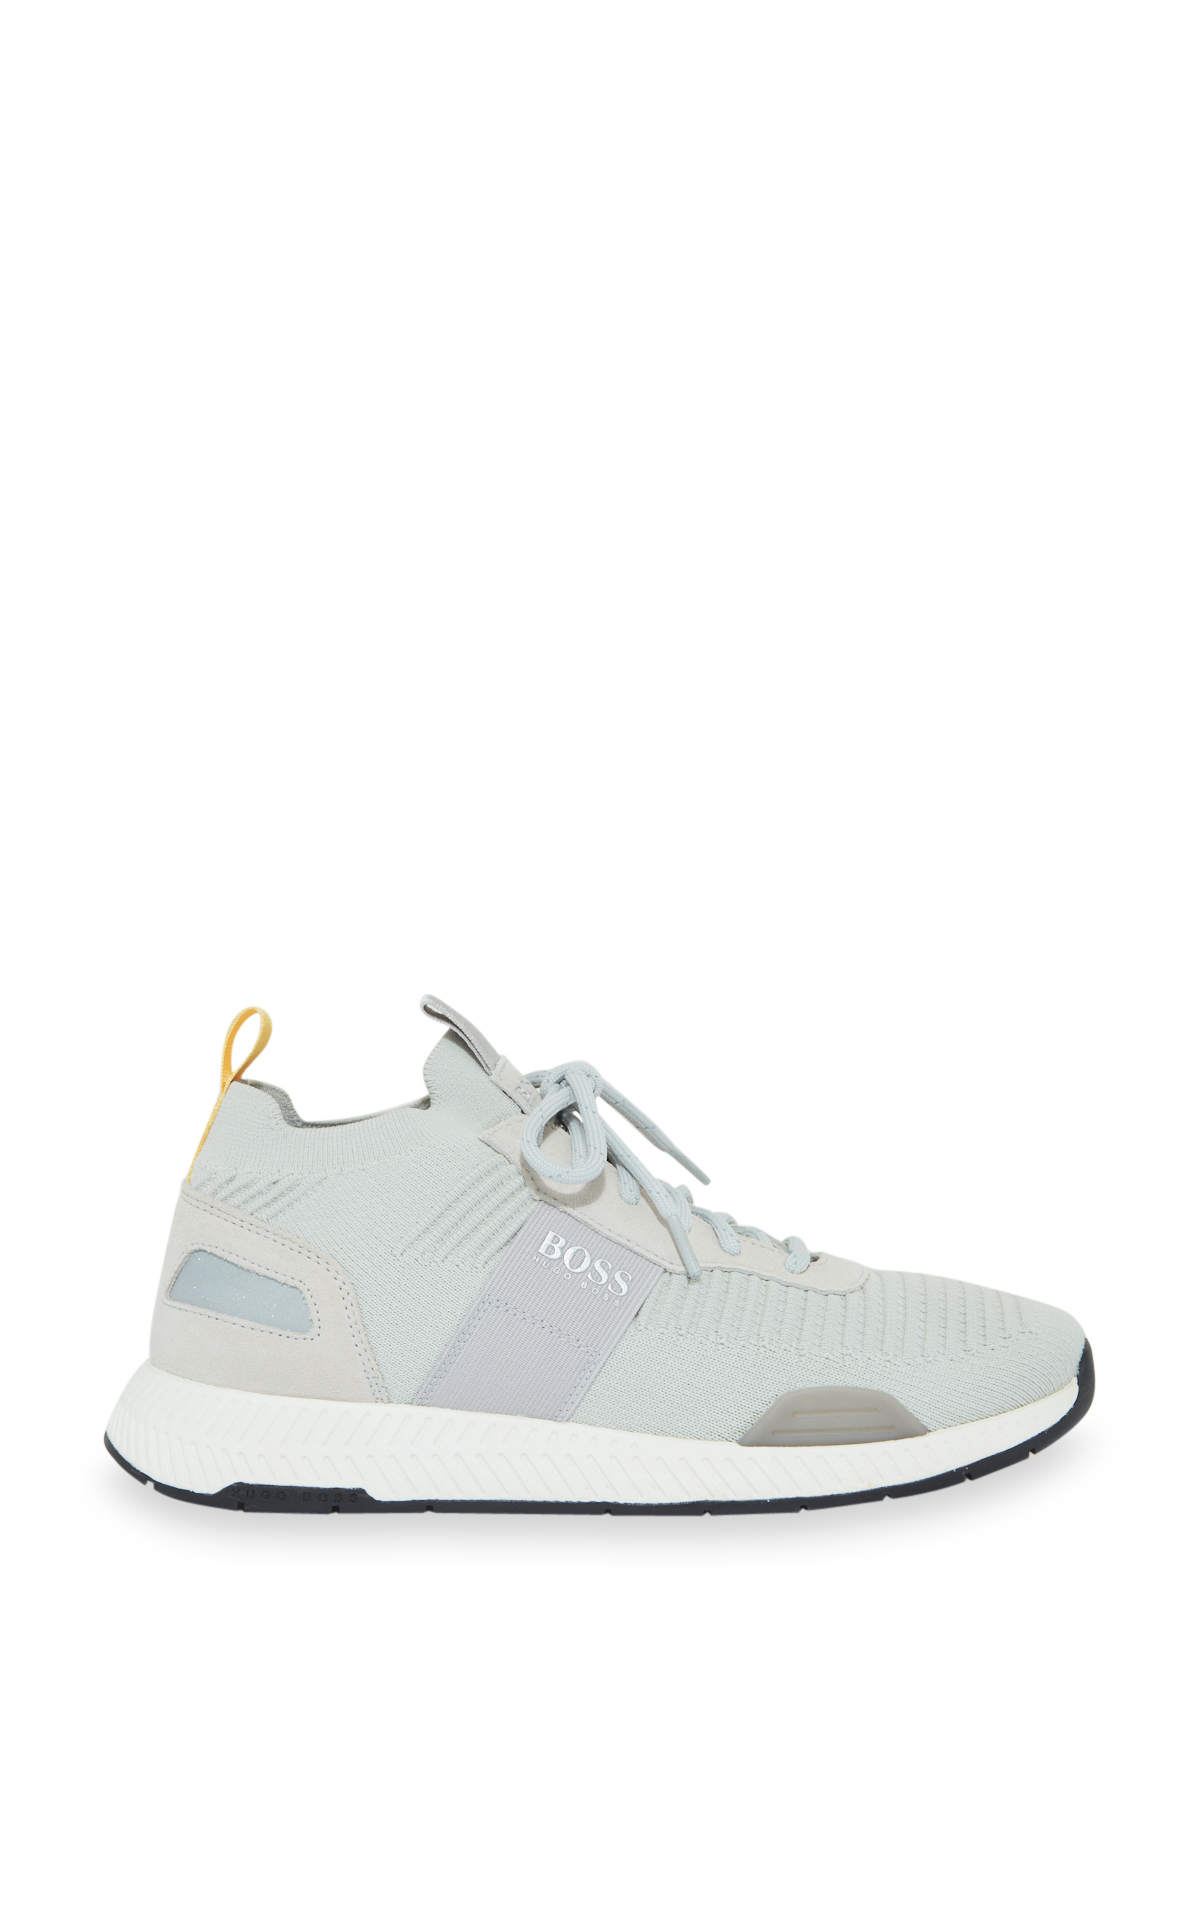 la vallée village Hugo Boss Light beige sneakers